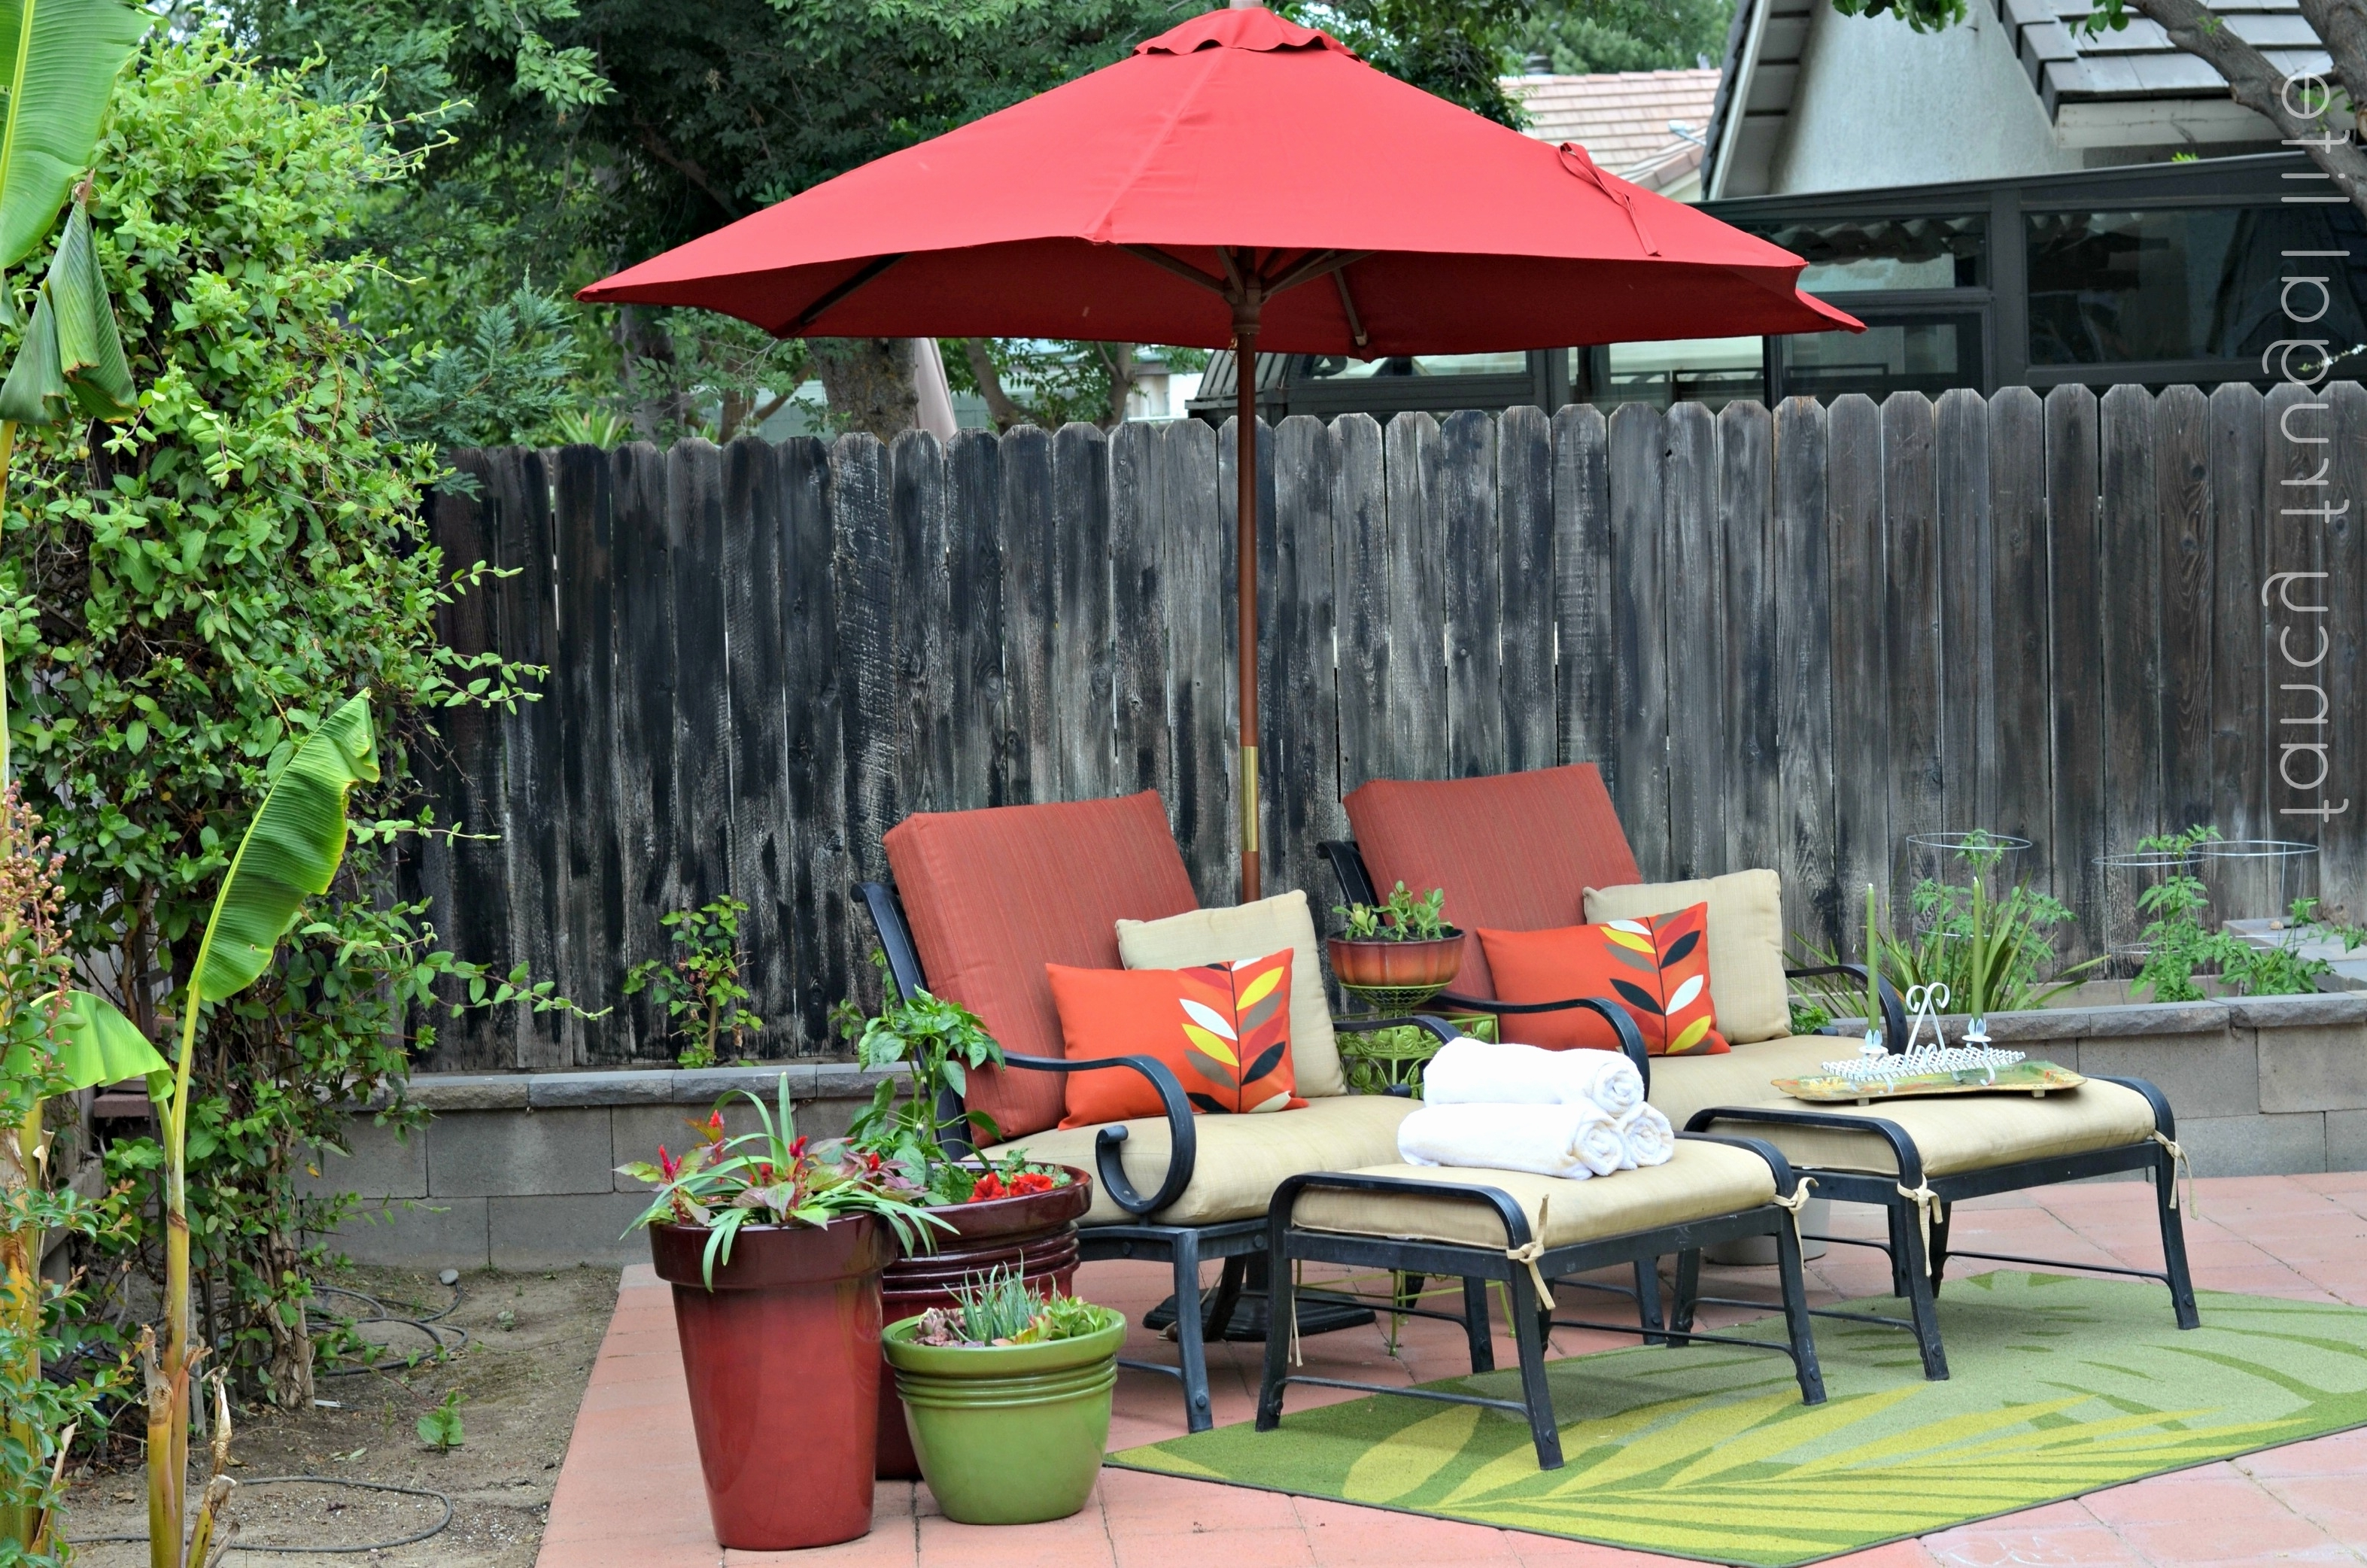 11 Cantilever Patio Umbrella With Base Costco (View 1 of 20)